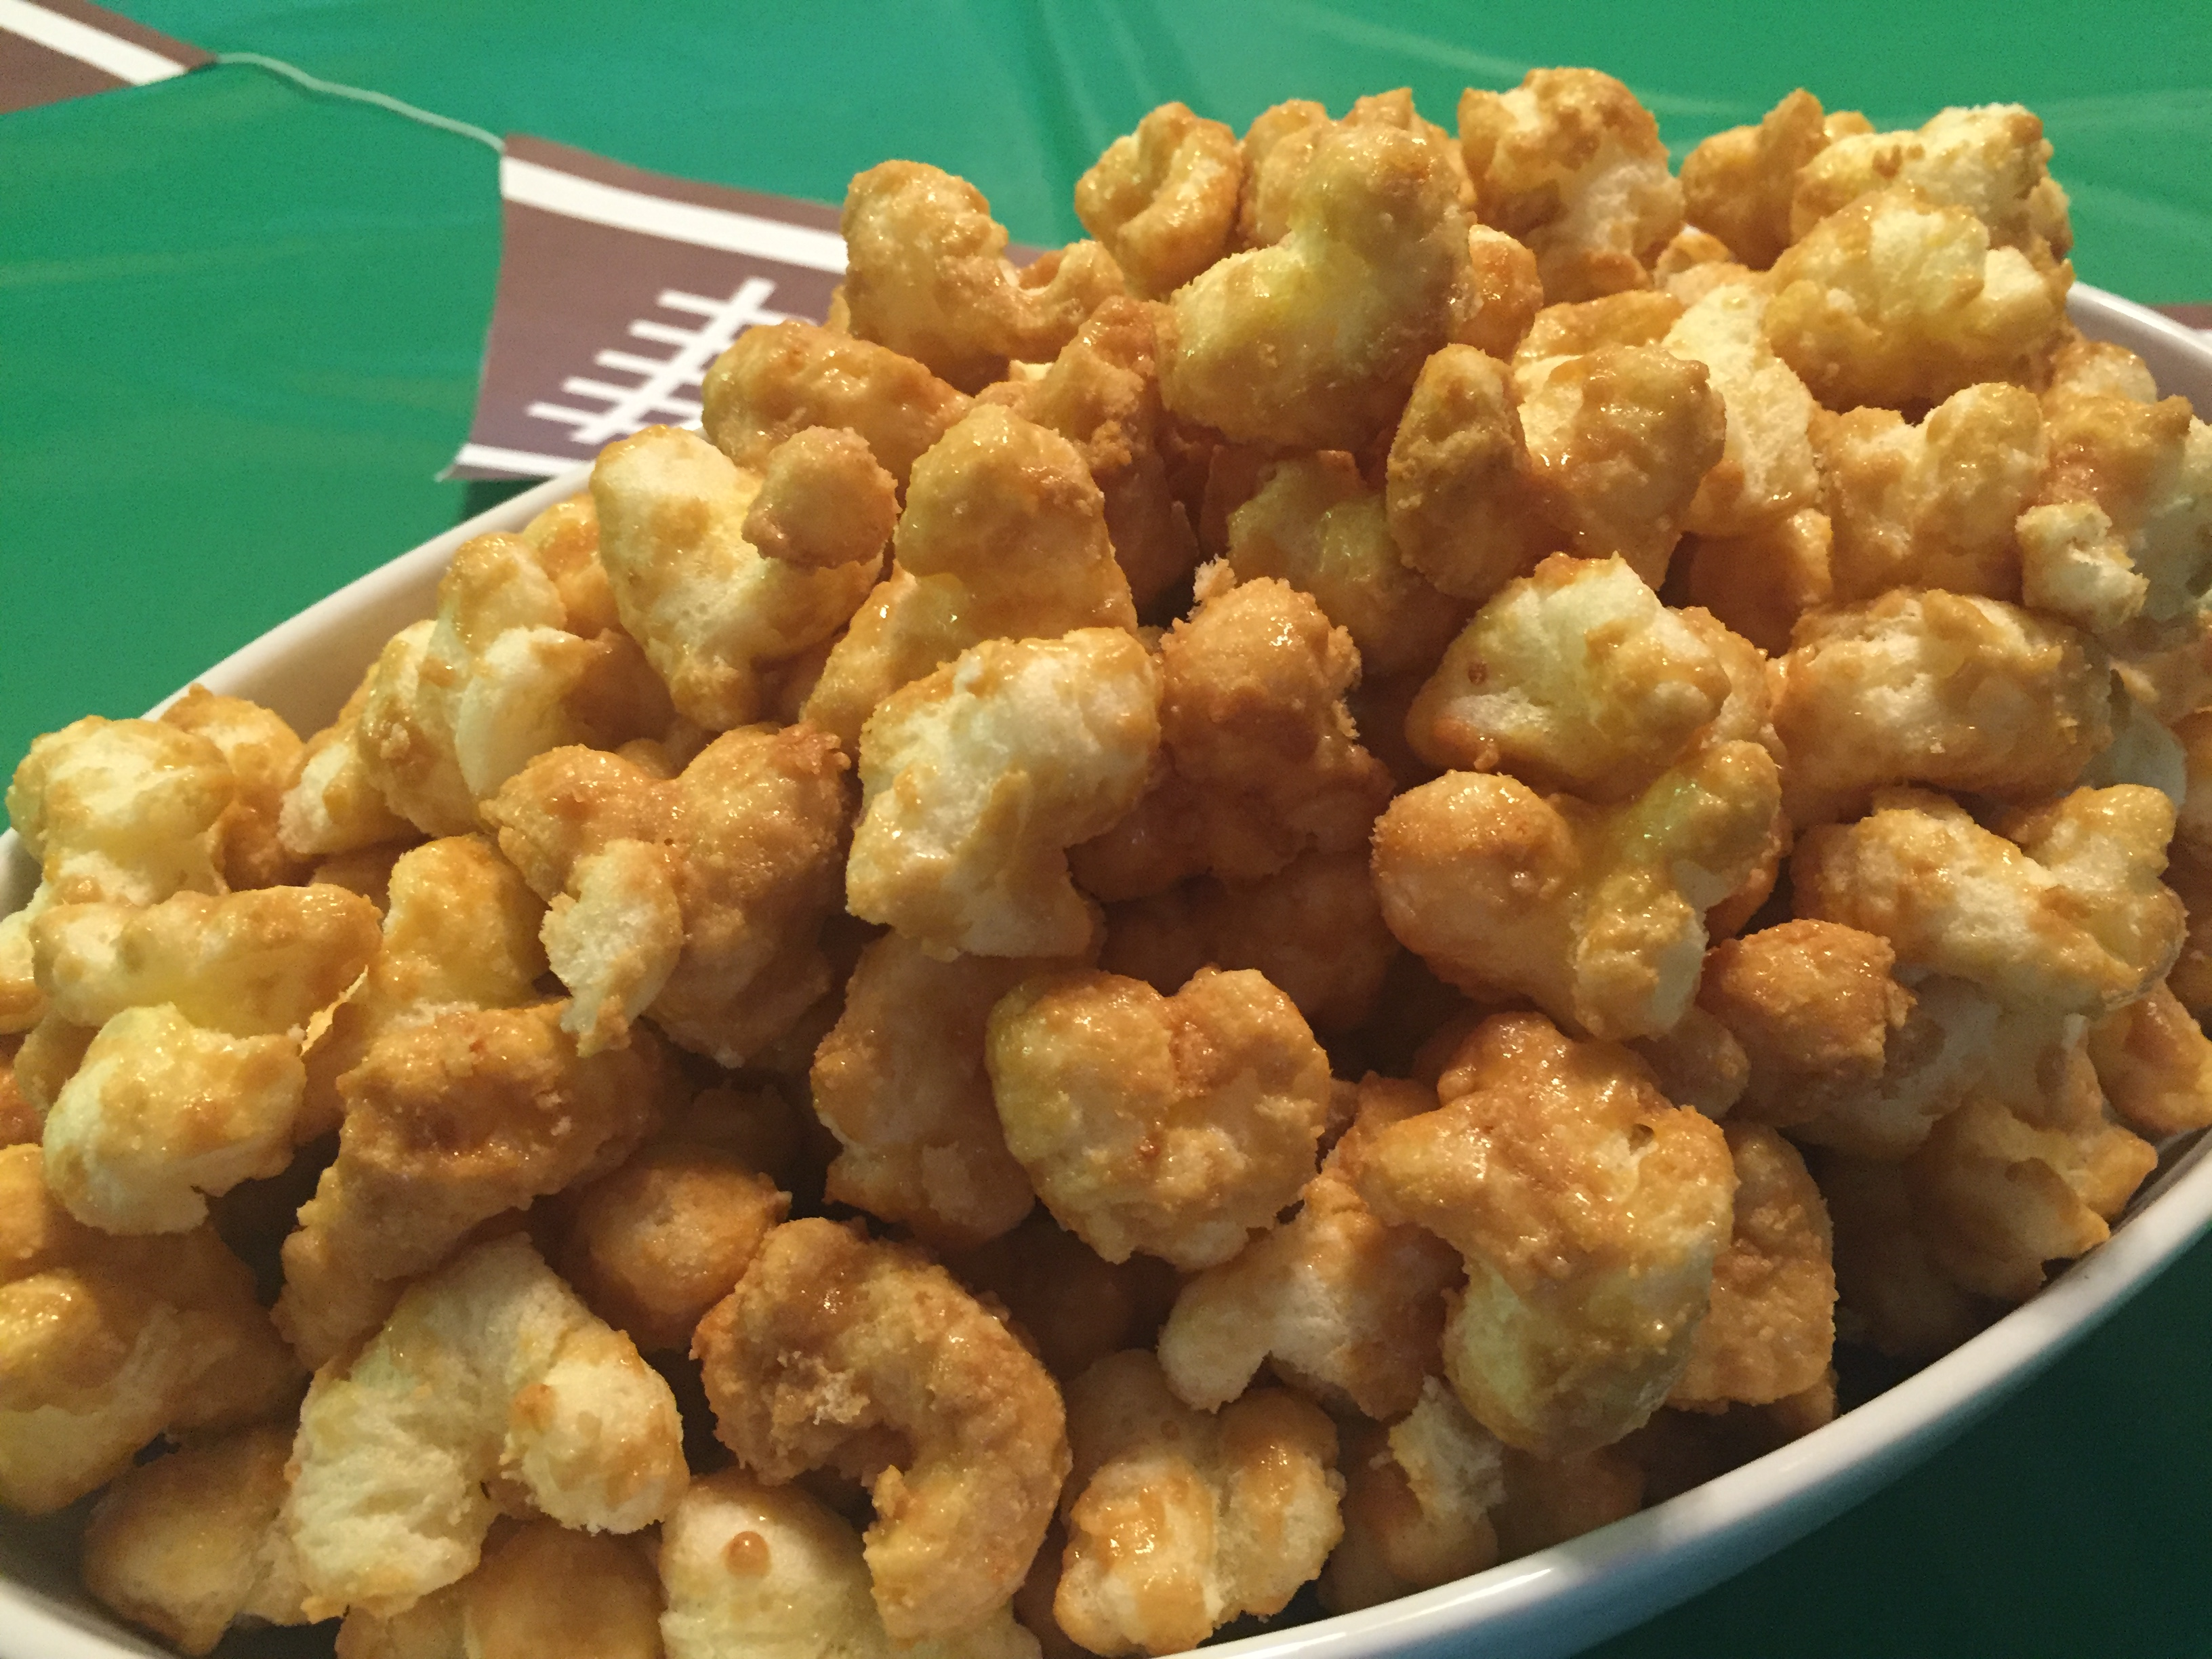 Caramel Puff Corn Recipe on serving table